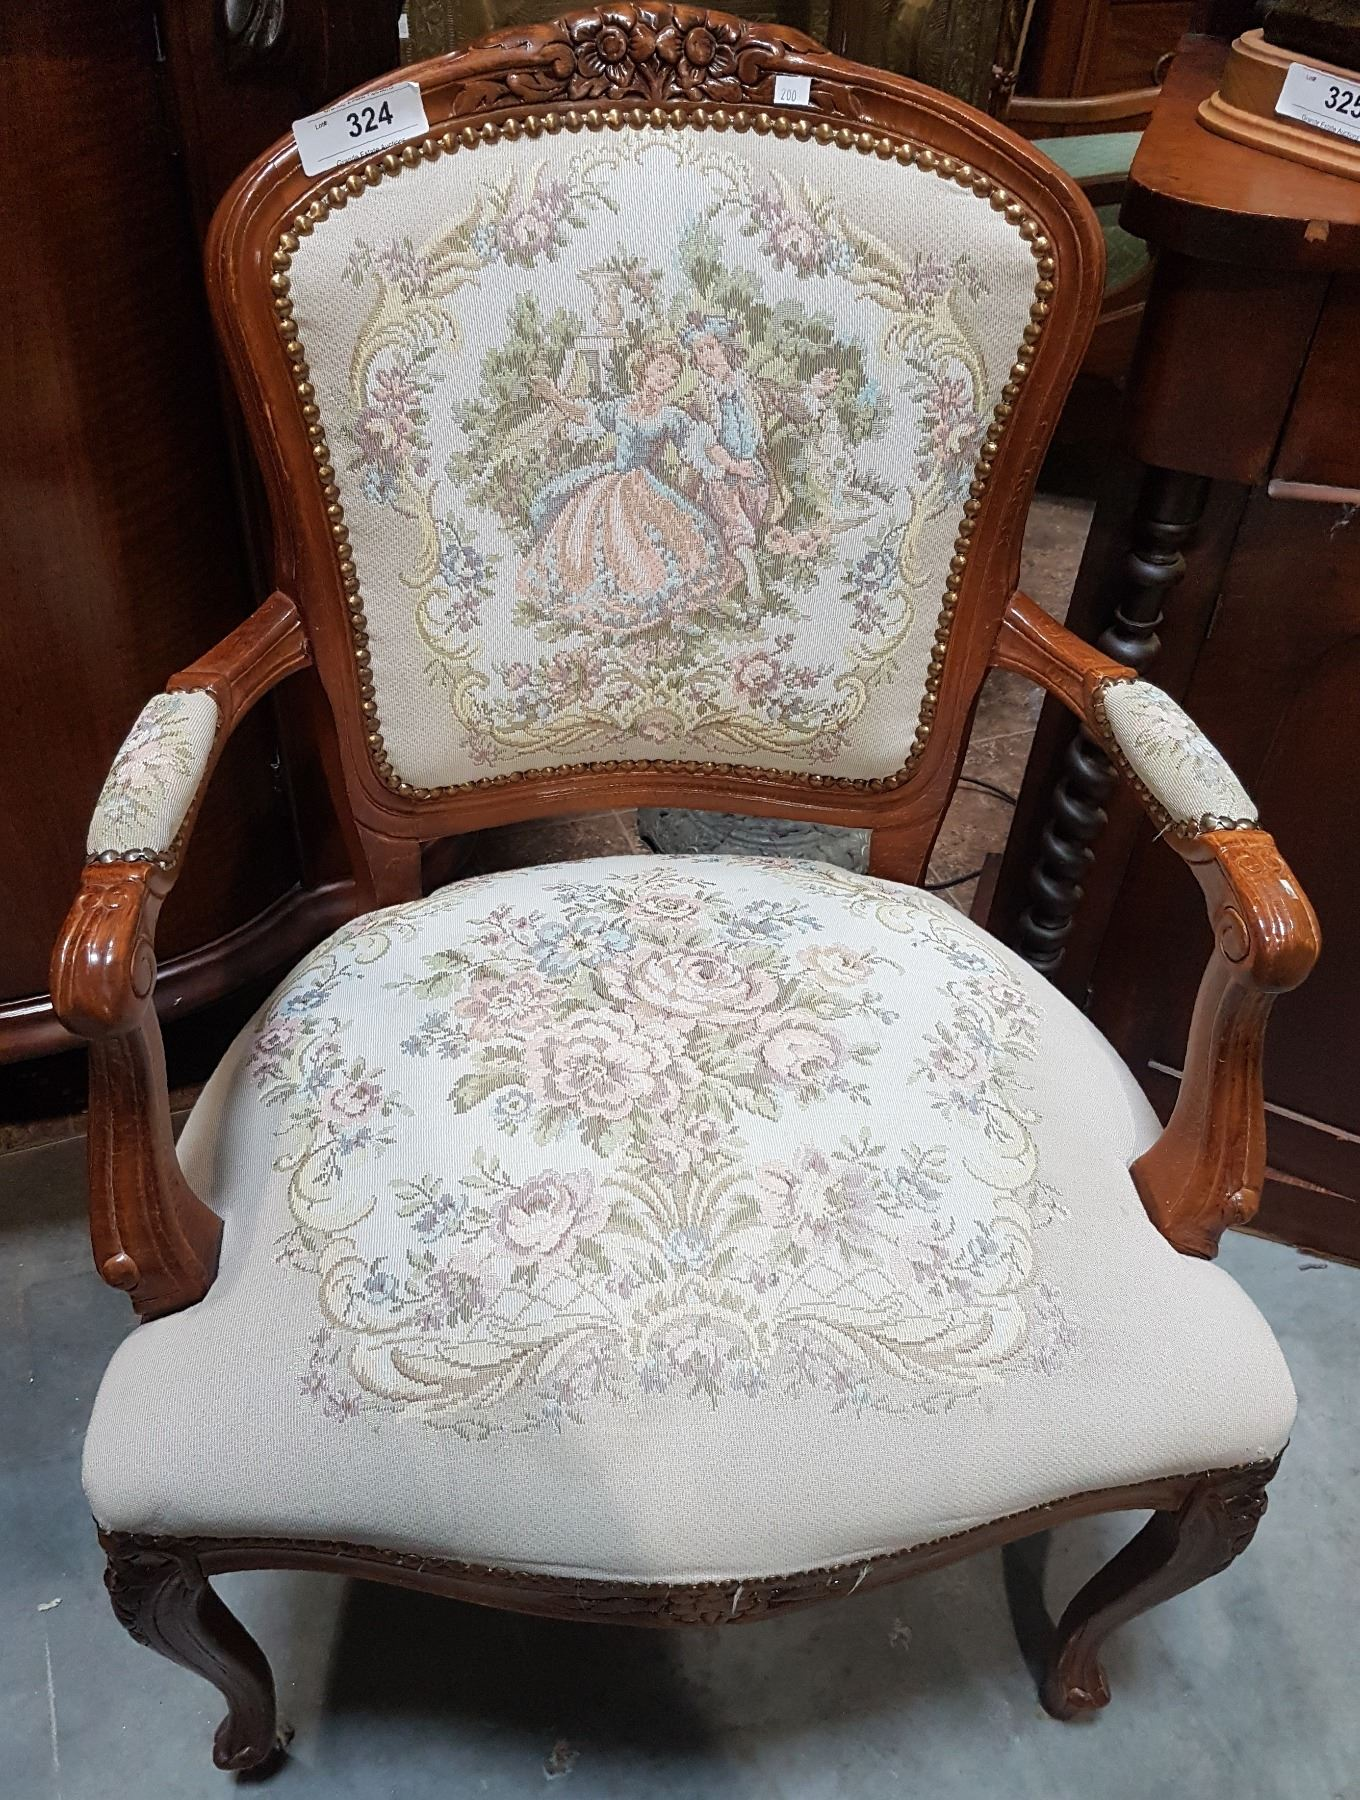 Image 1 : QUEEN ANNE STYLE NEEDLEPOINT CHAIR